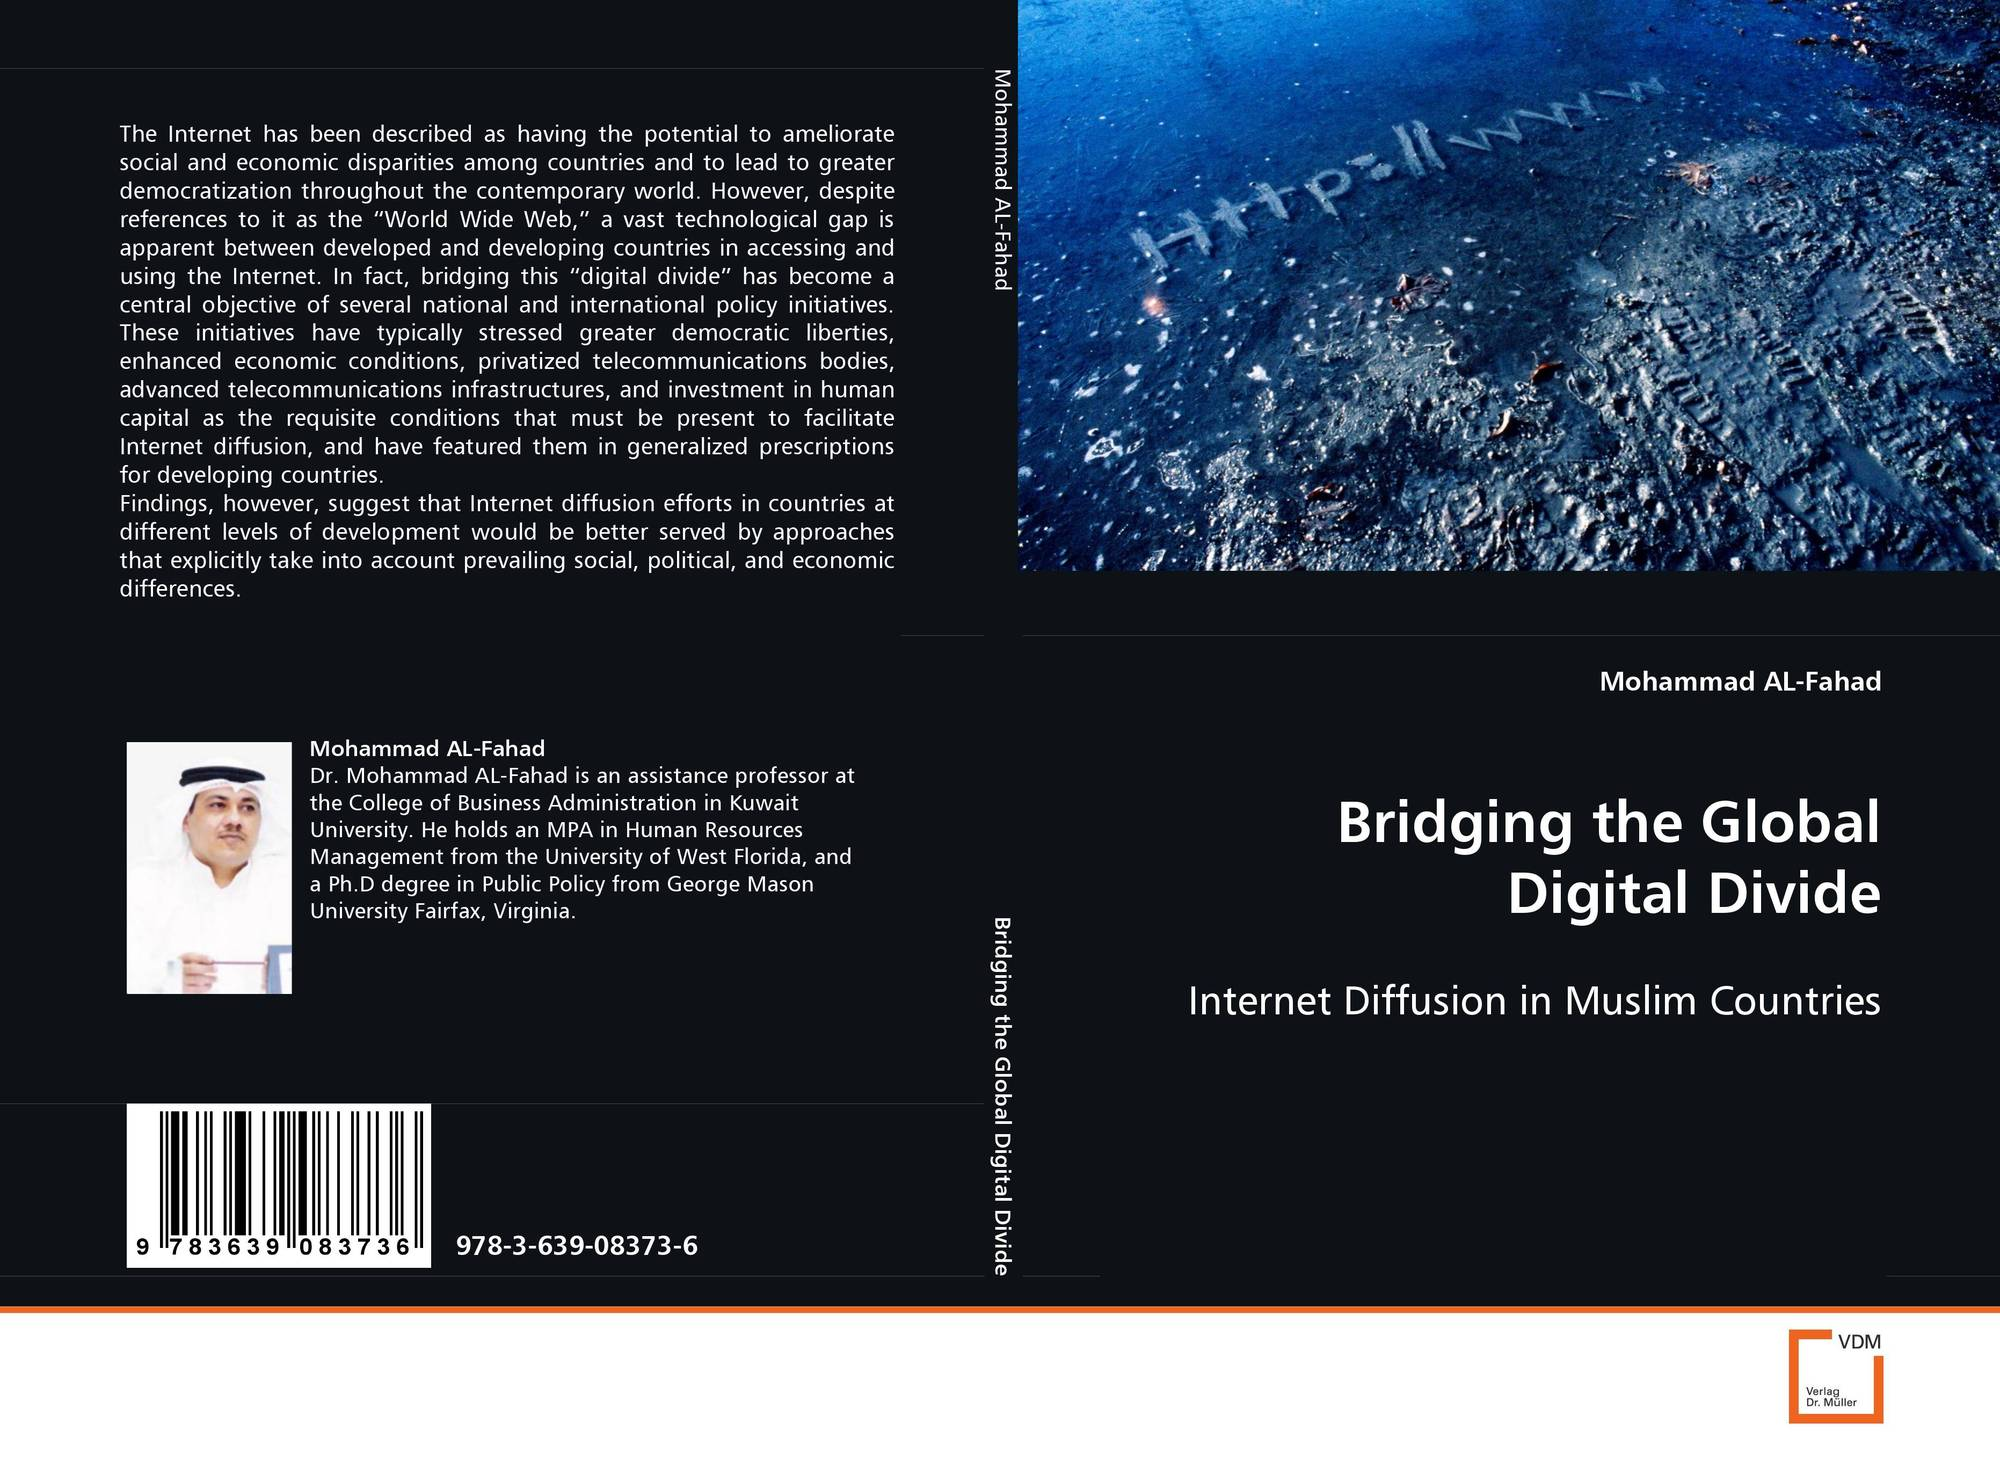 global village and the global digital divide Home ana periodicals ojin columns information resourcesthe digital divide: how wide and how deep information resources: the digital divide: the digital divide is a global problem, but even in the technology rich united states the situation is troubling.